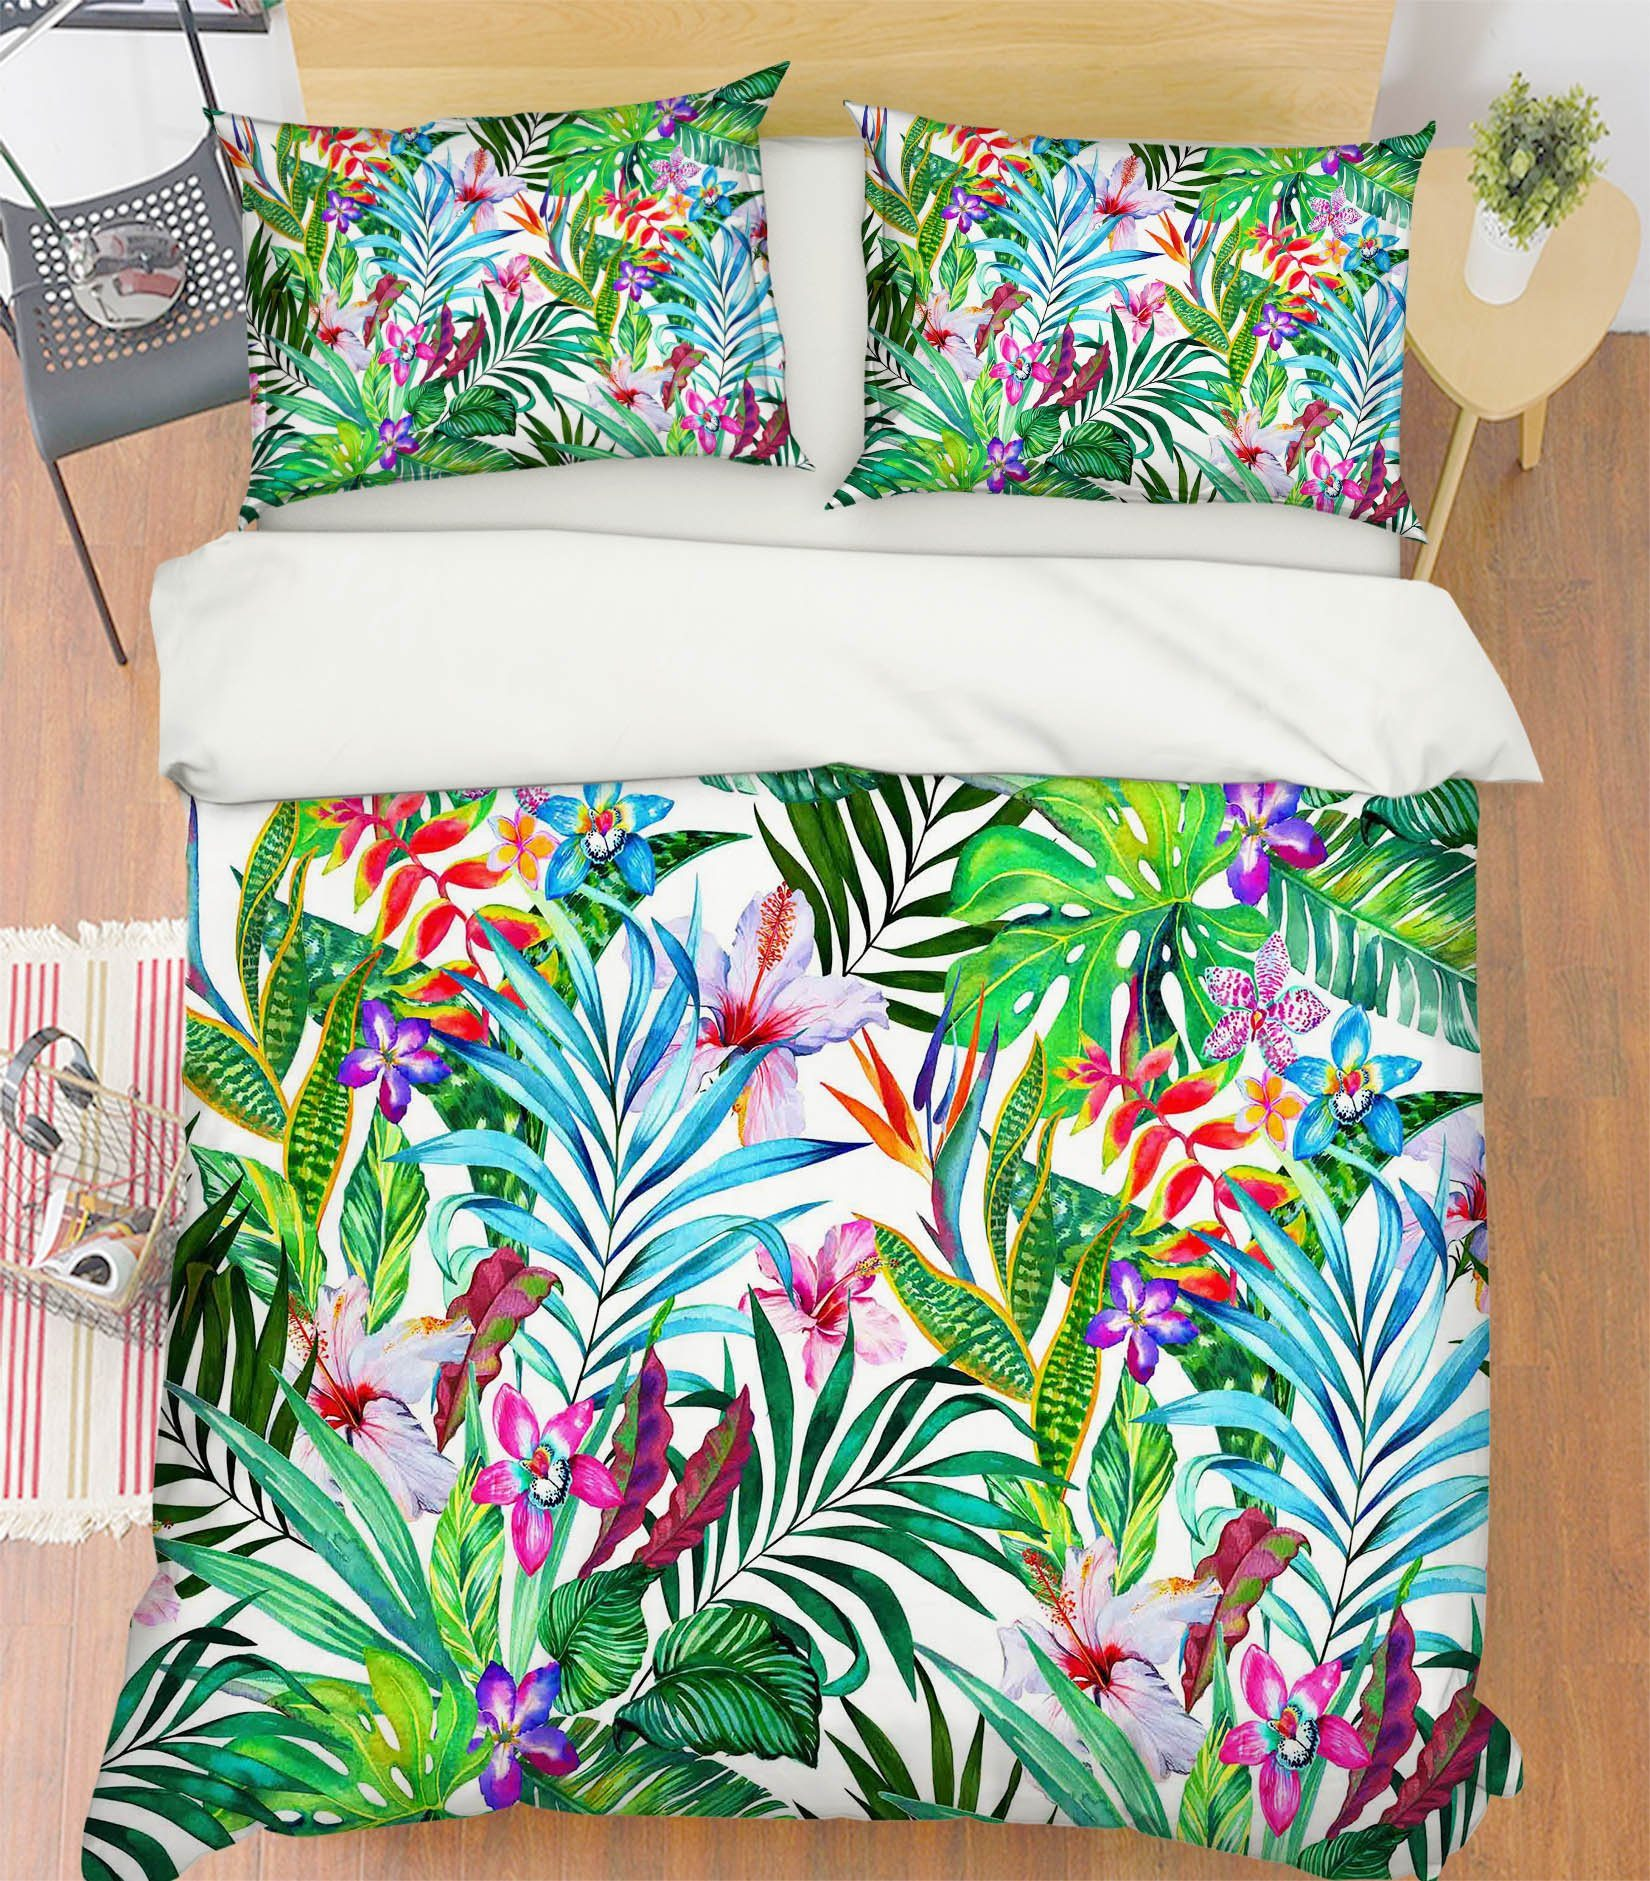 3D Bright Flowers Leaves 211 Bed Pillowcases Quilt Wallpaper AJ Wallpaper